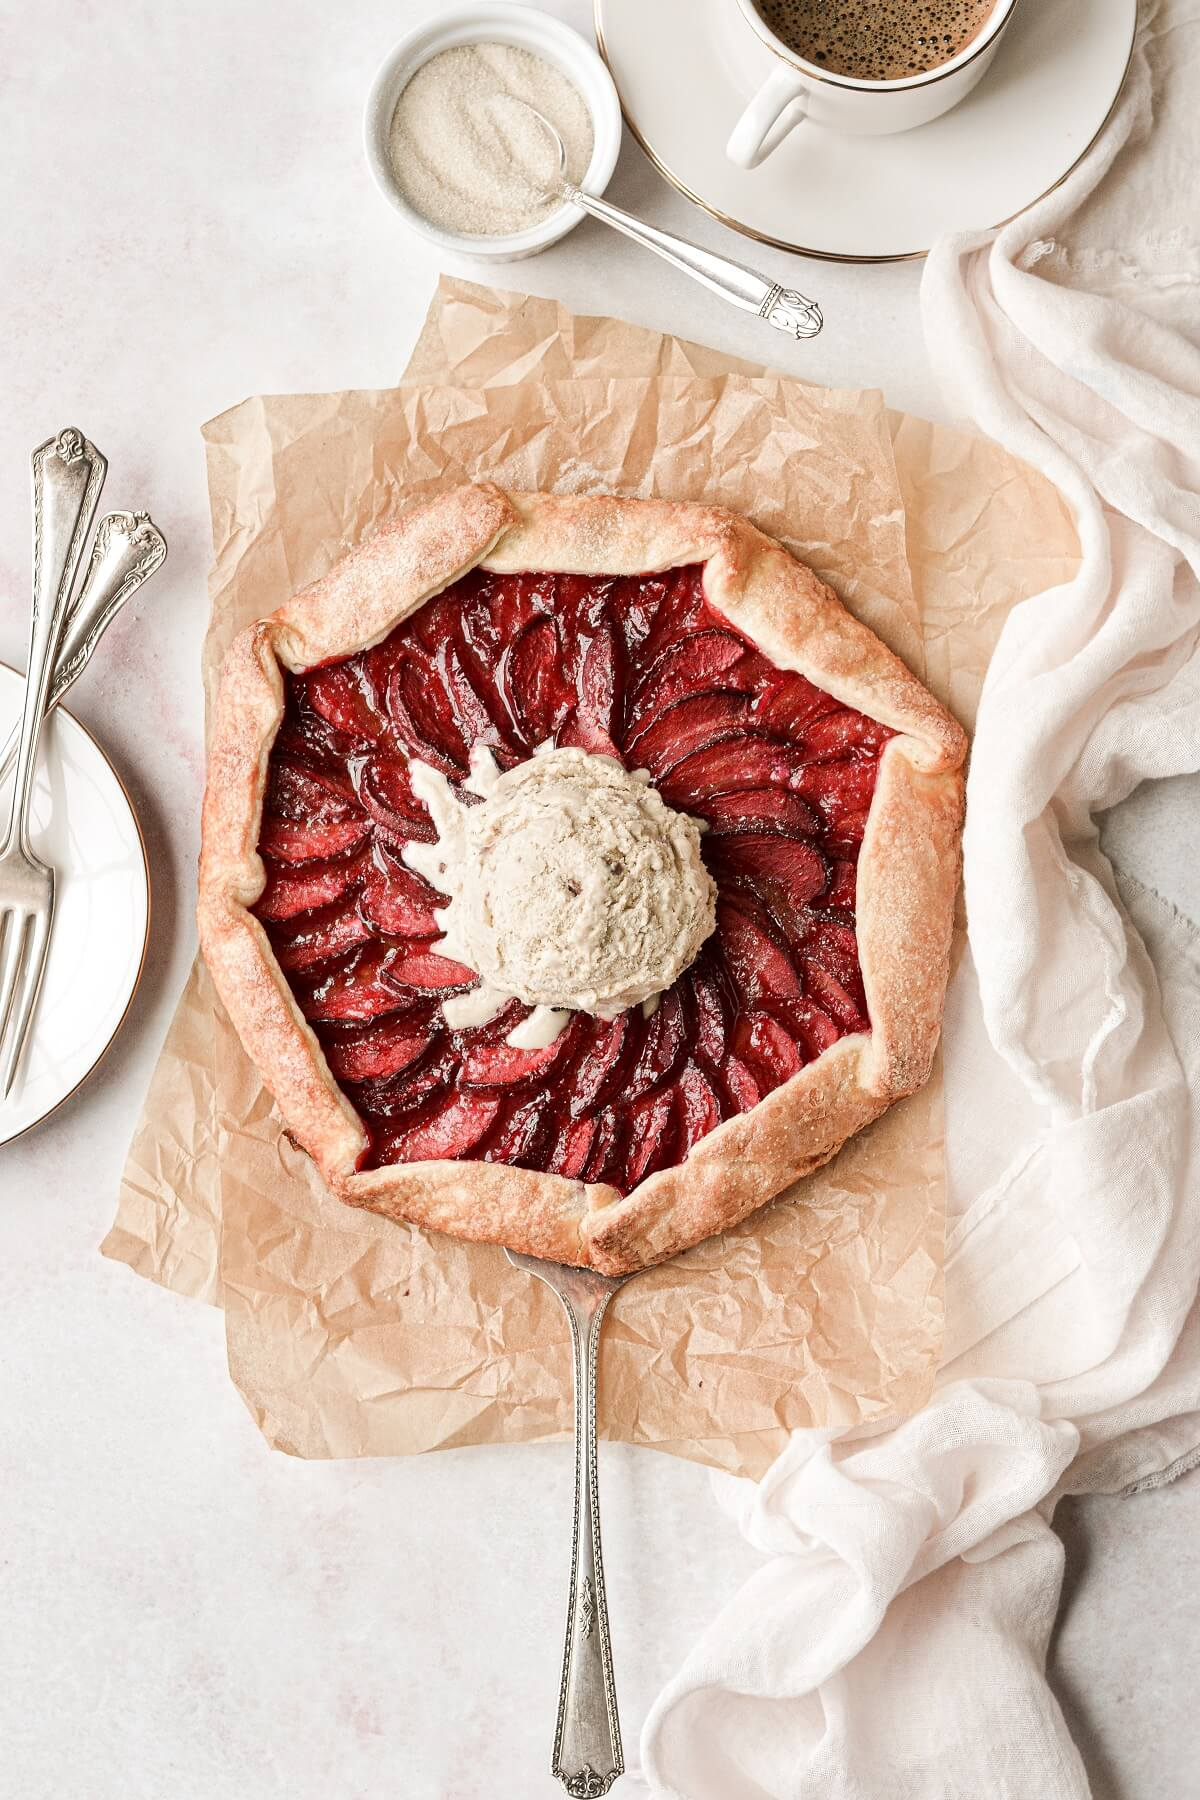 Plum galette on brown paper, topped with ice cream.